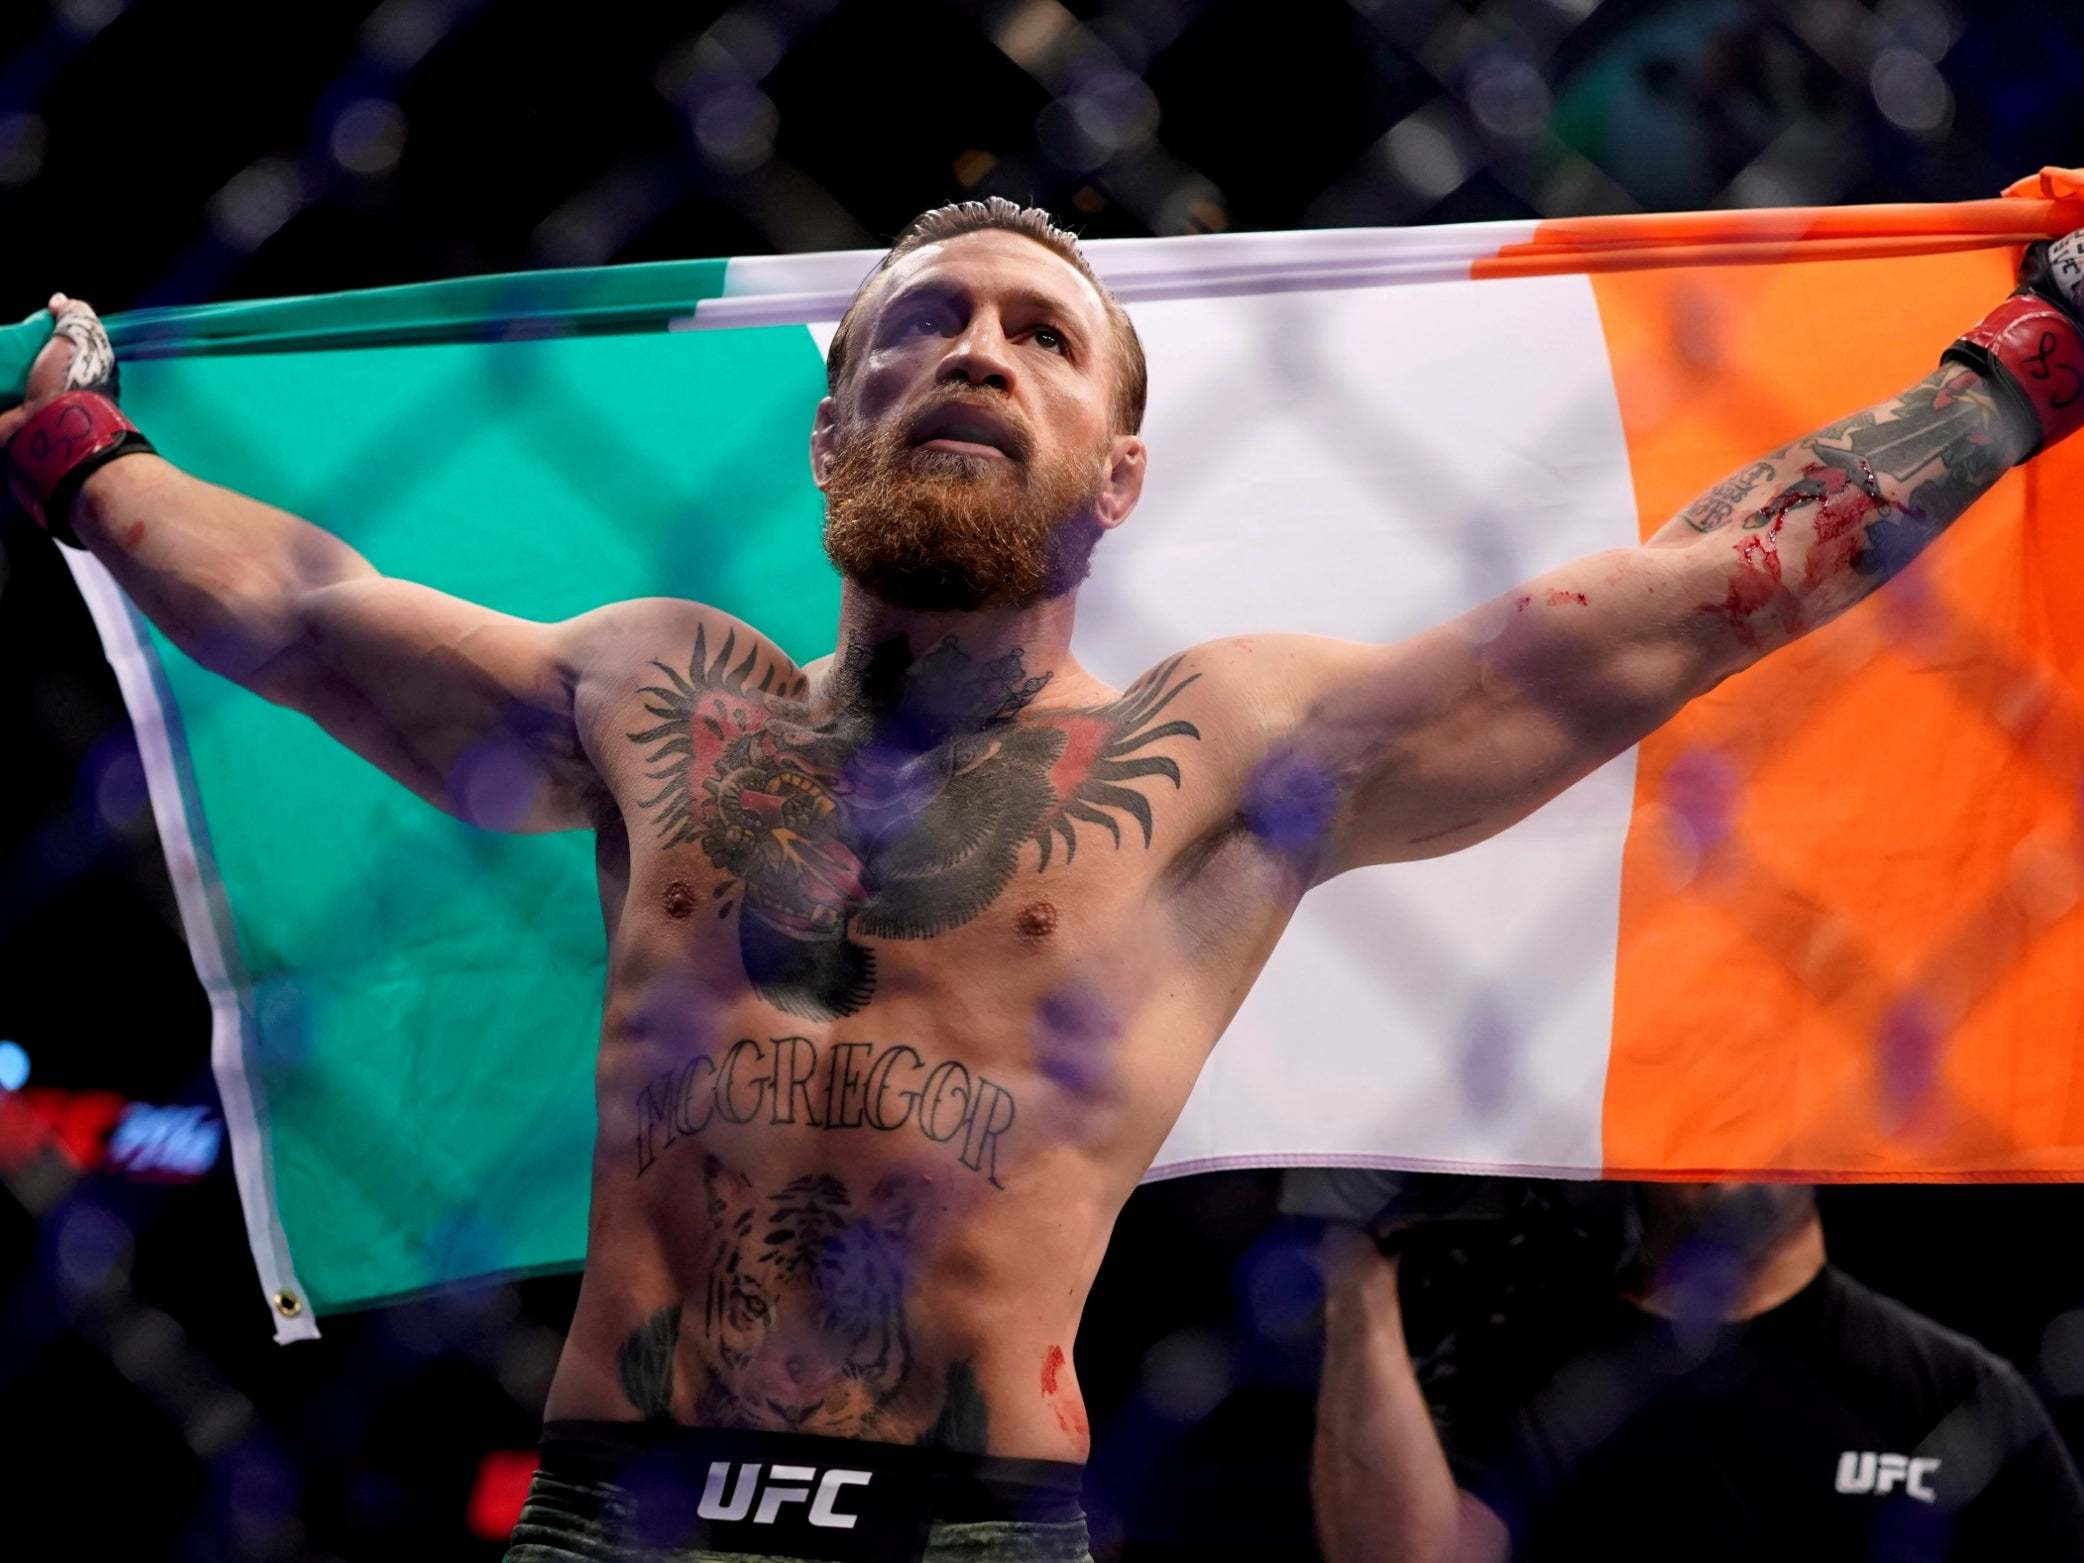 Conor McGregor is back with a bang – but Floyd Mayweather and Manny Pacquiao should wait